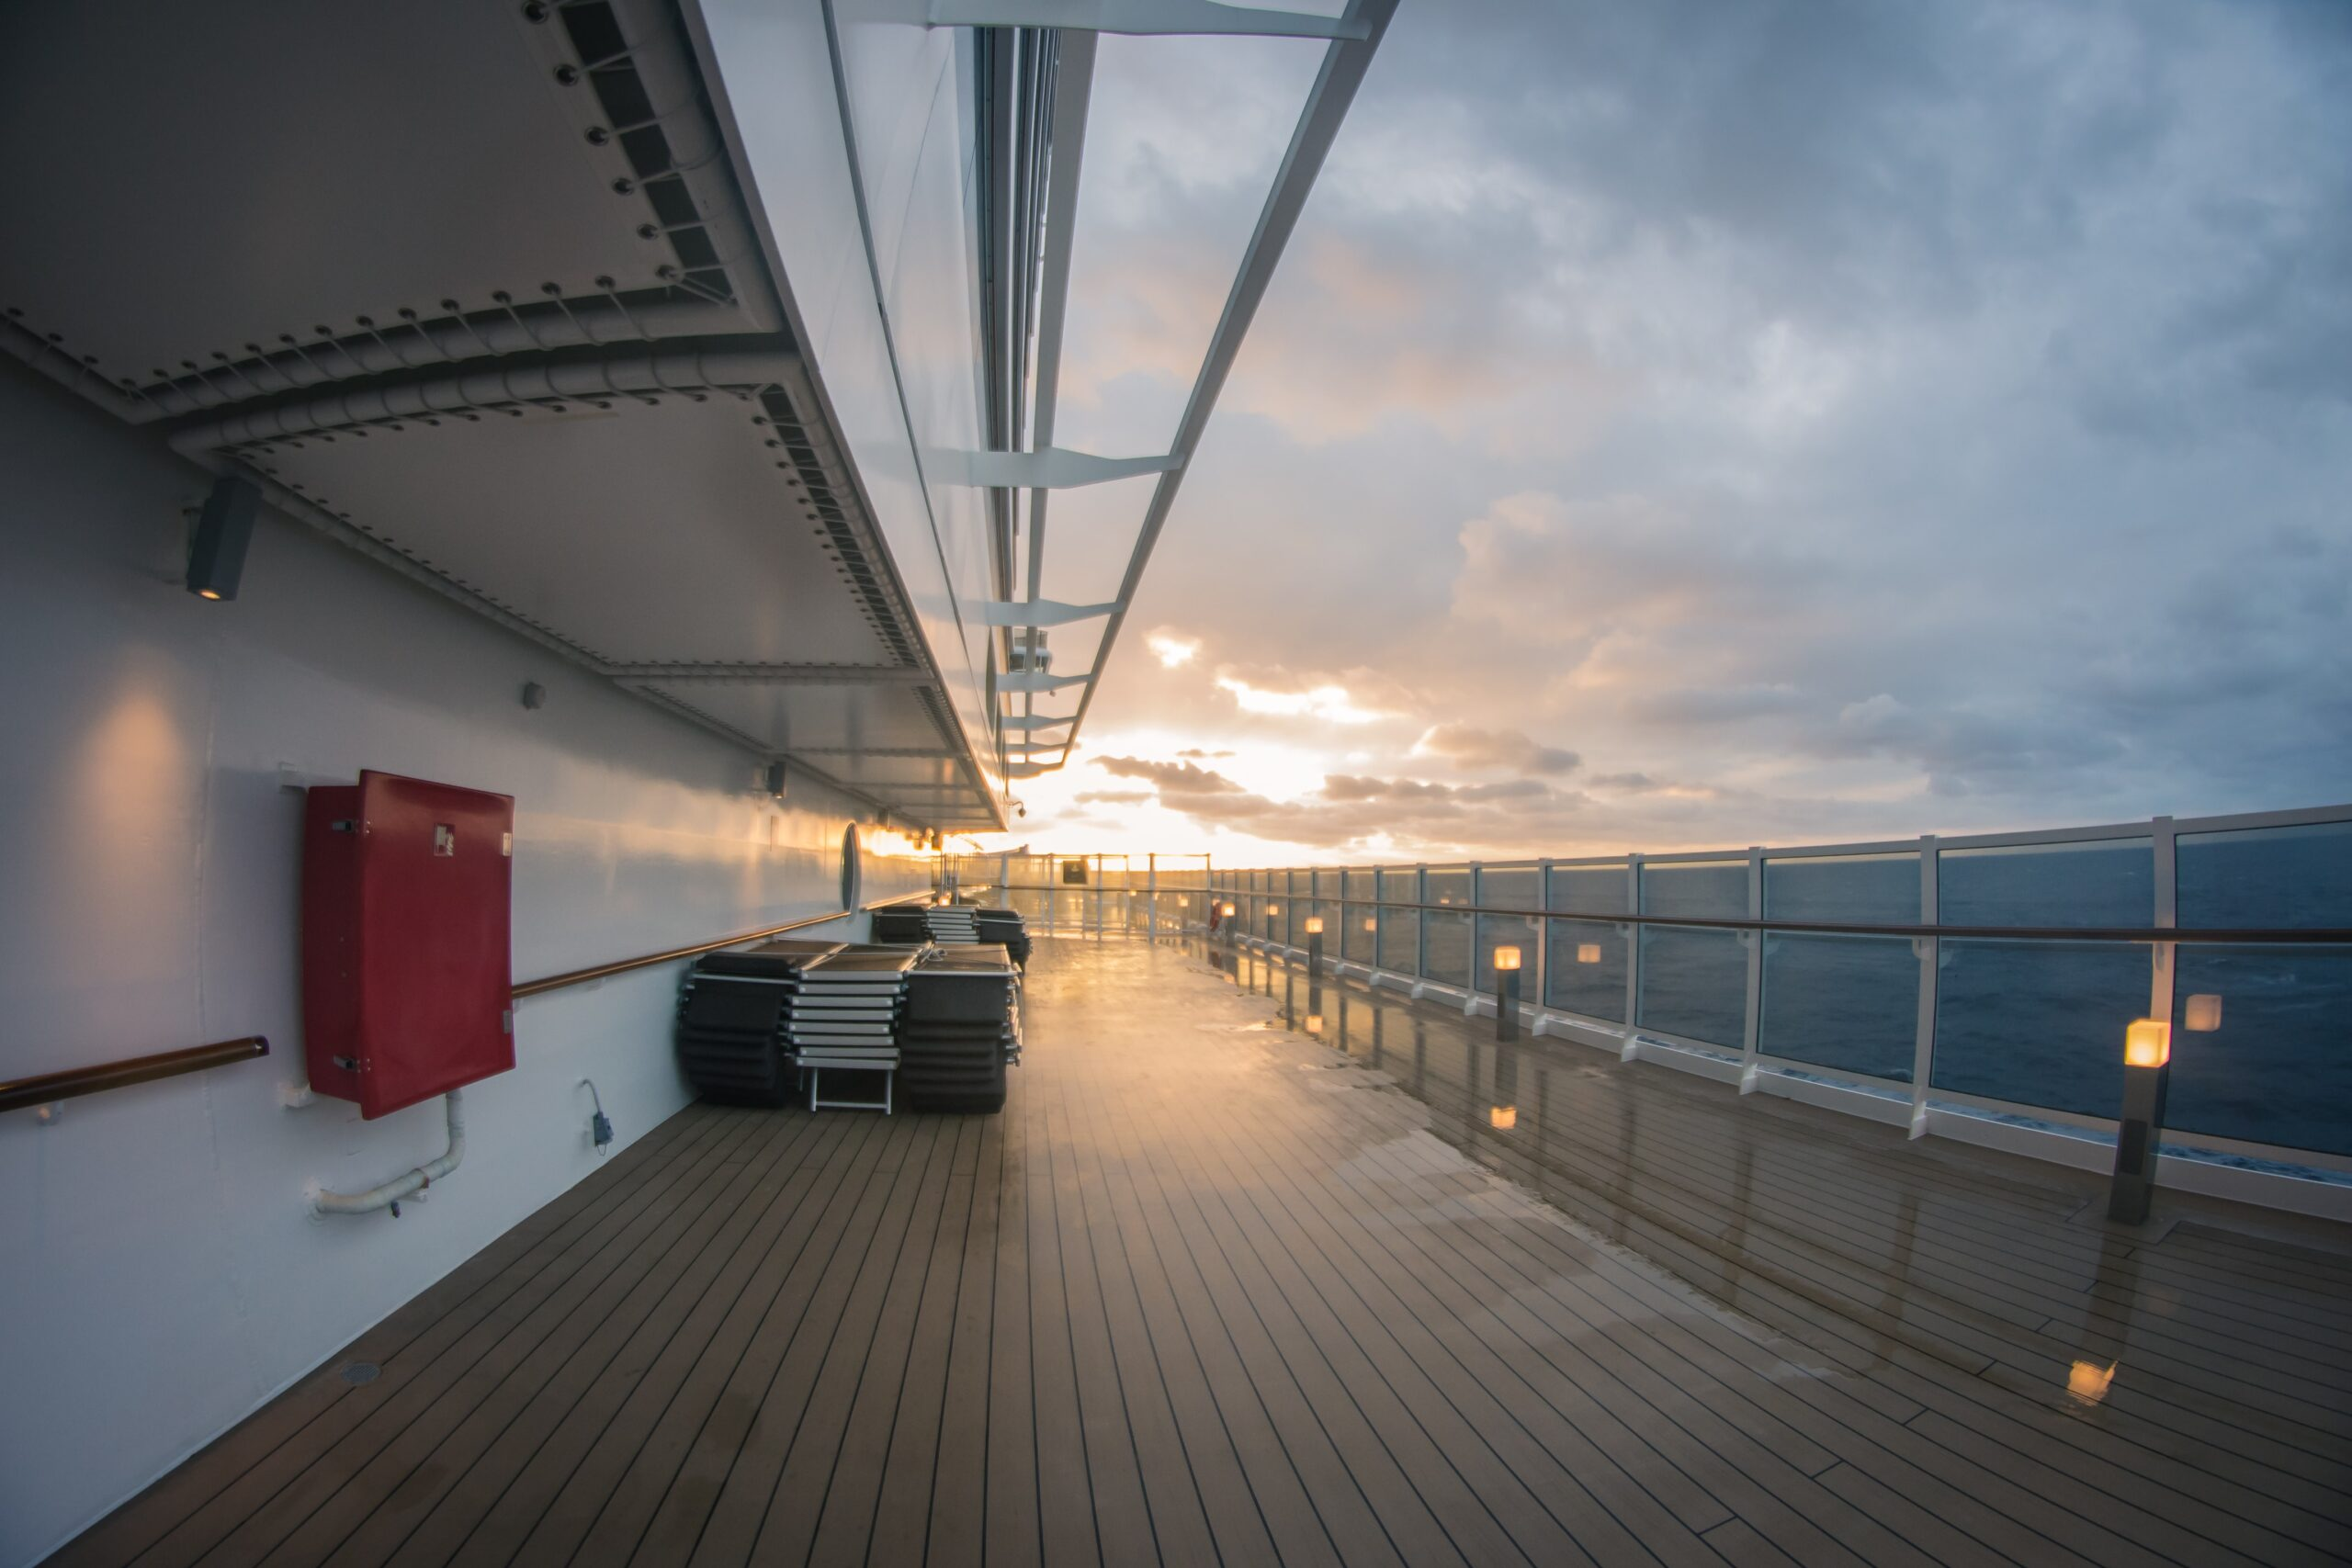 An empty deck of a cruise ship.